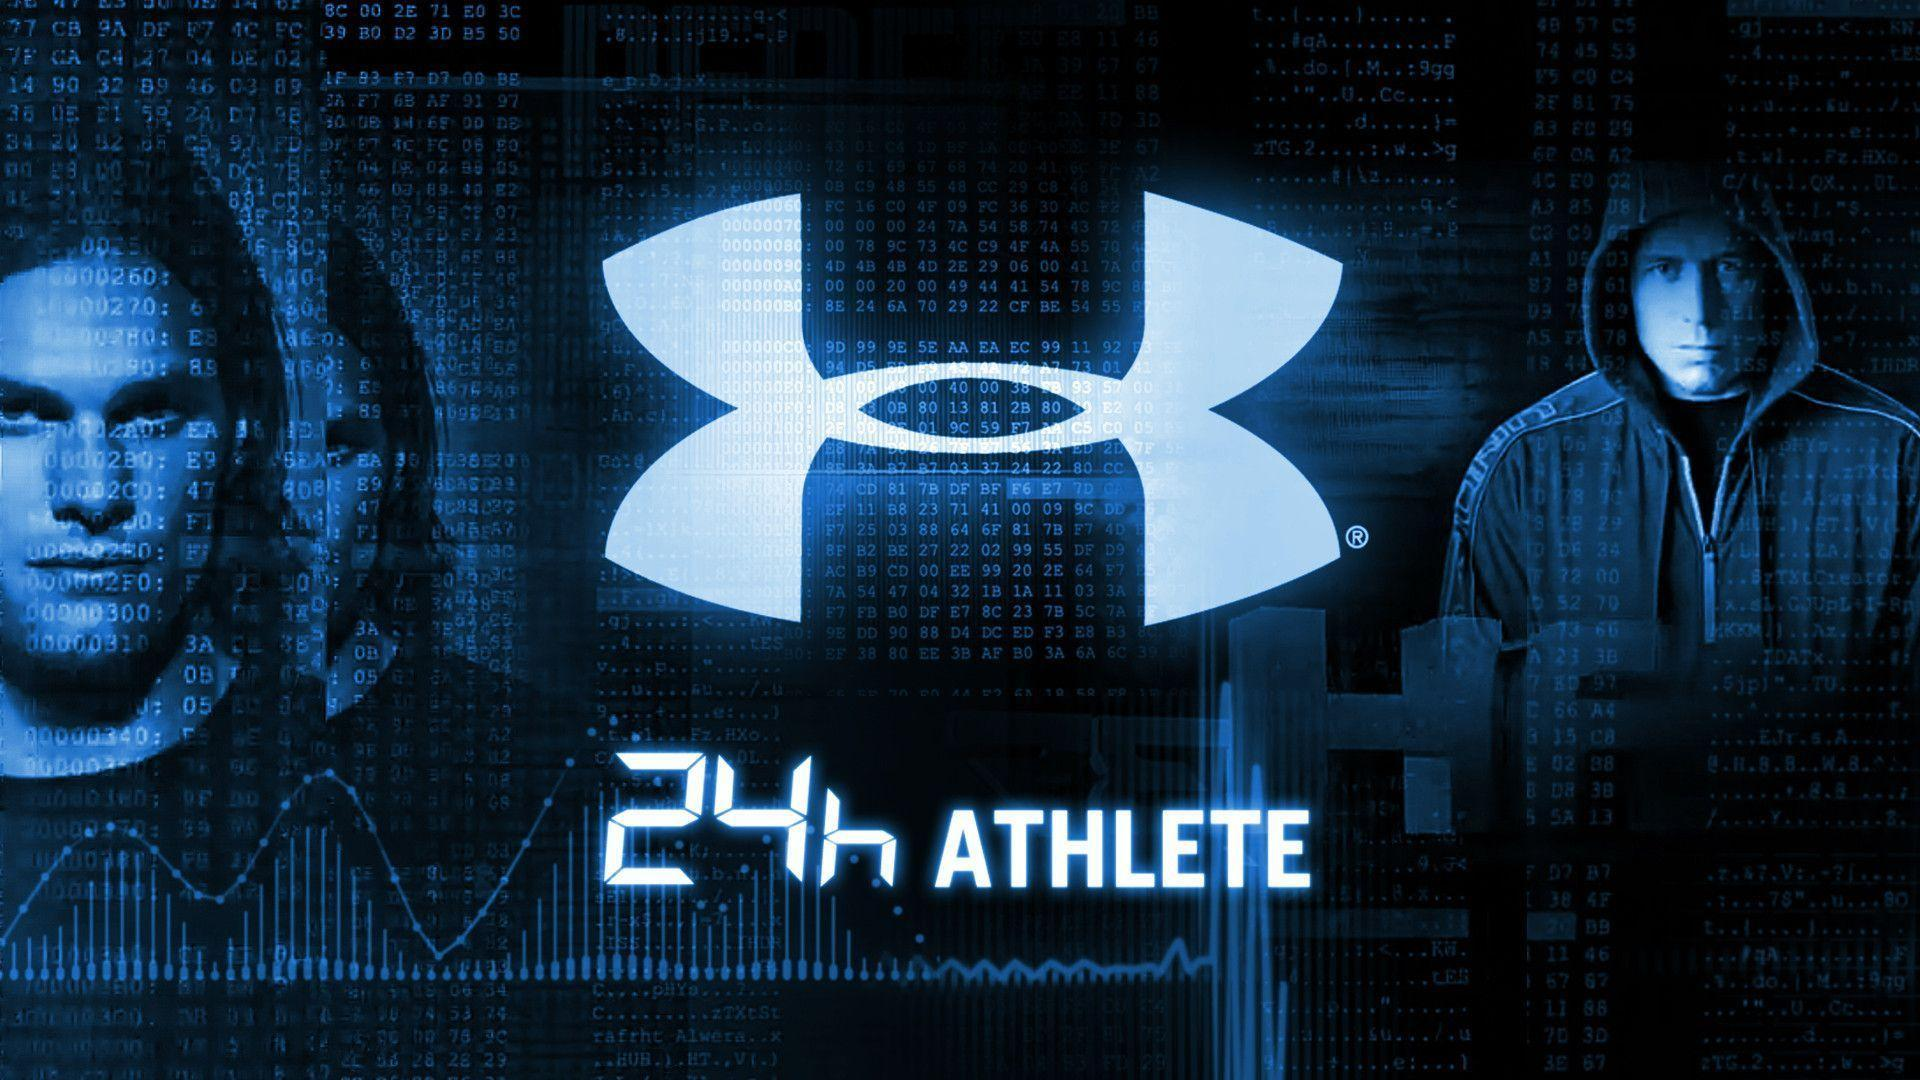 Logos For > Under Armour Logo Desktop Wallpaper